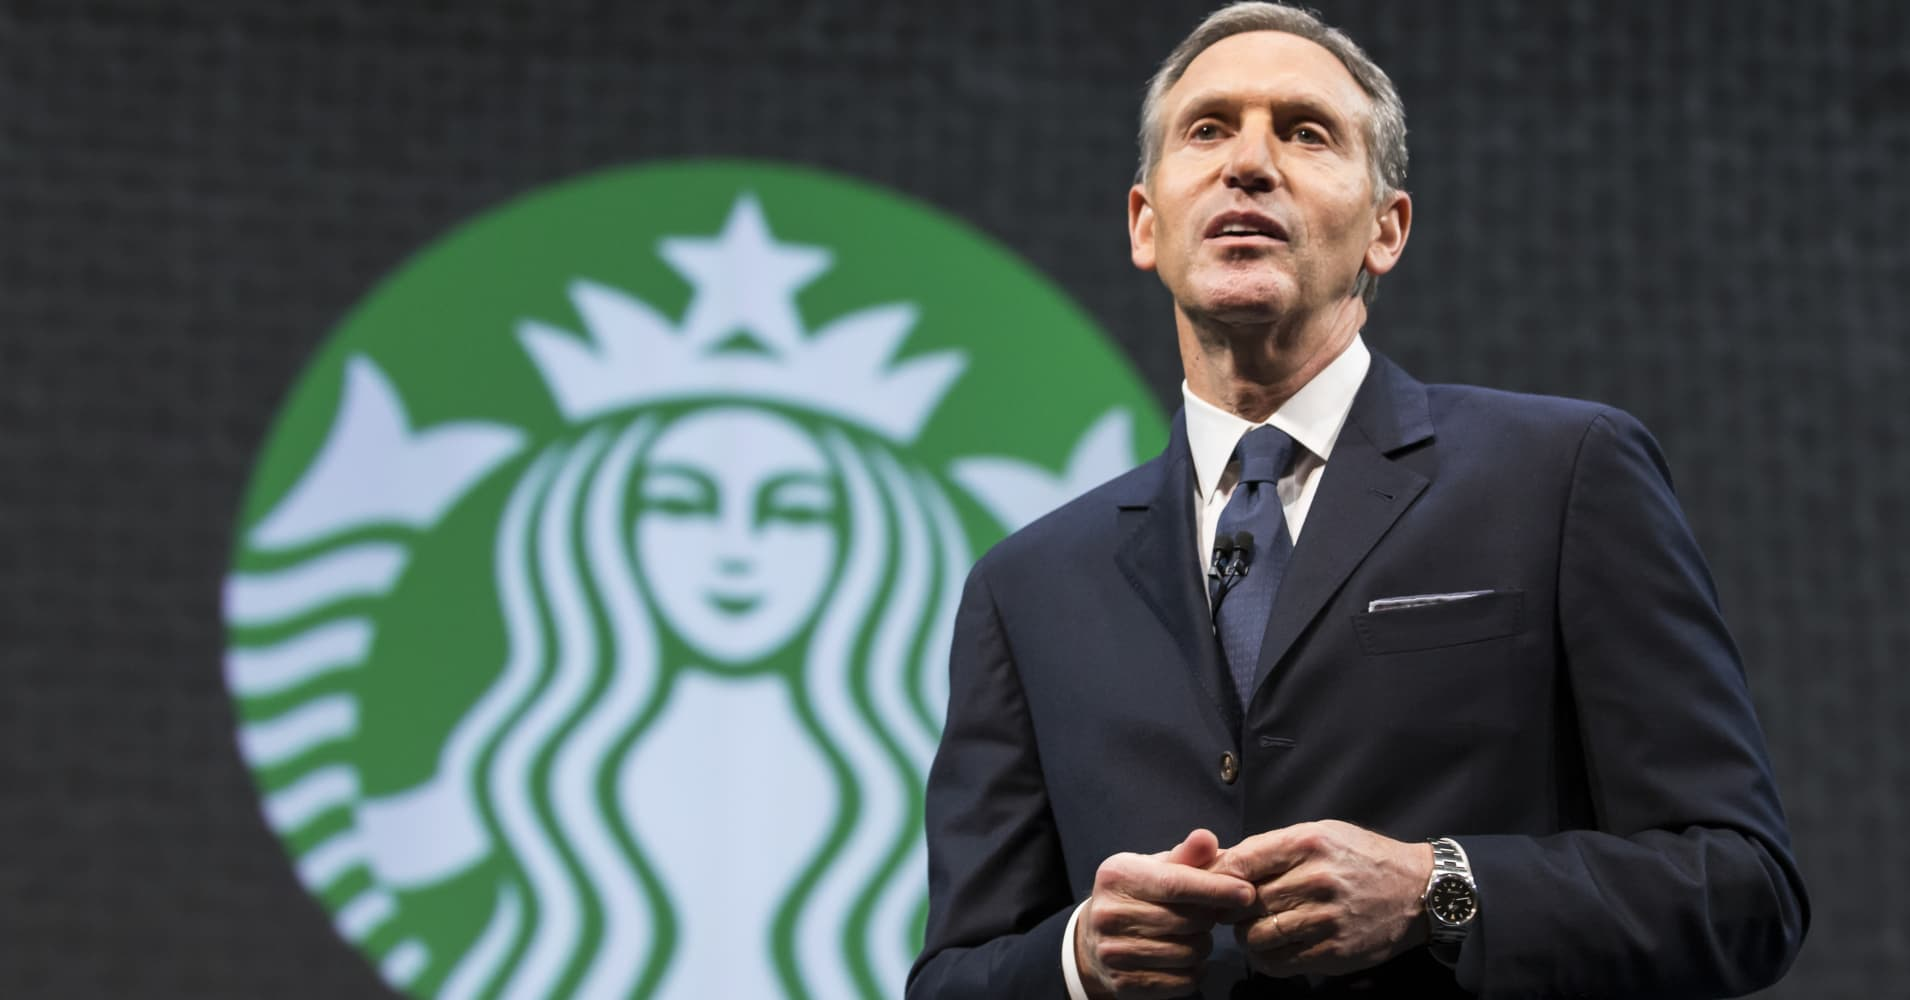 EXCLUSIVE: Starbucks new CEO: 'I can't try to be Howard. I'm not Howard.'